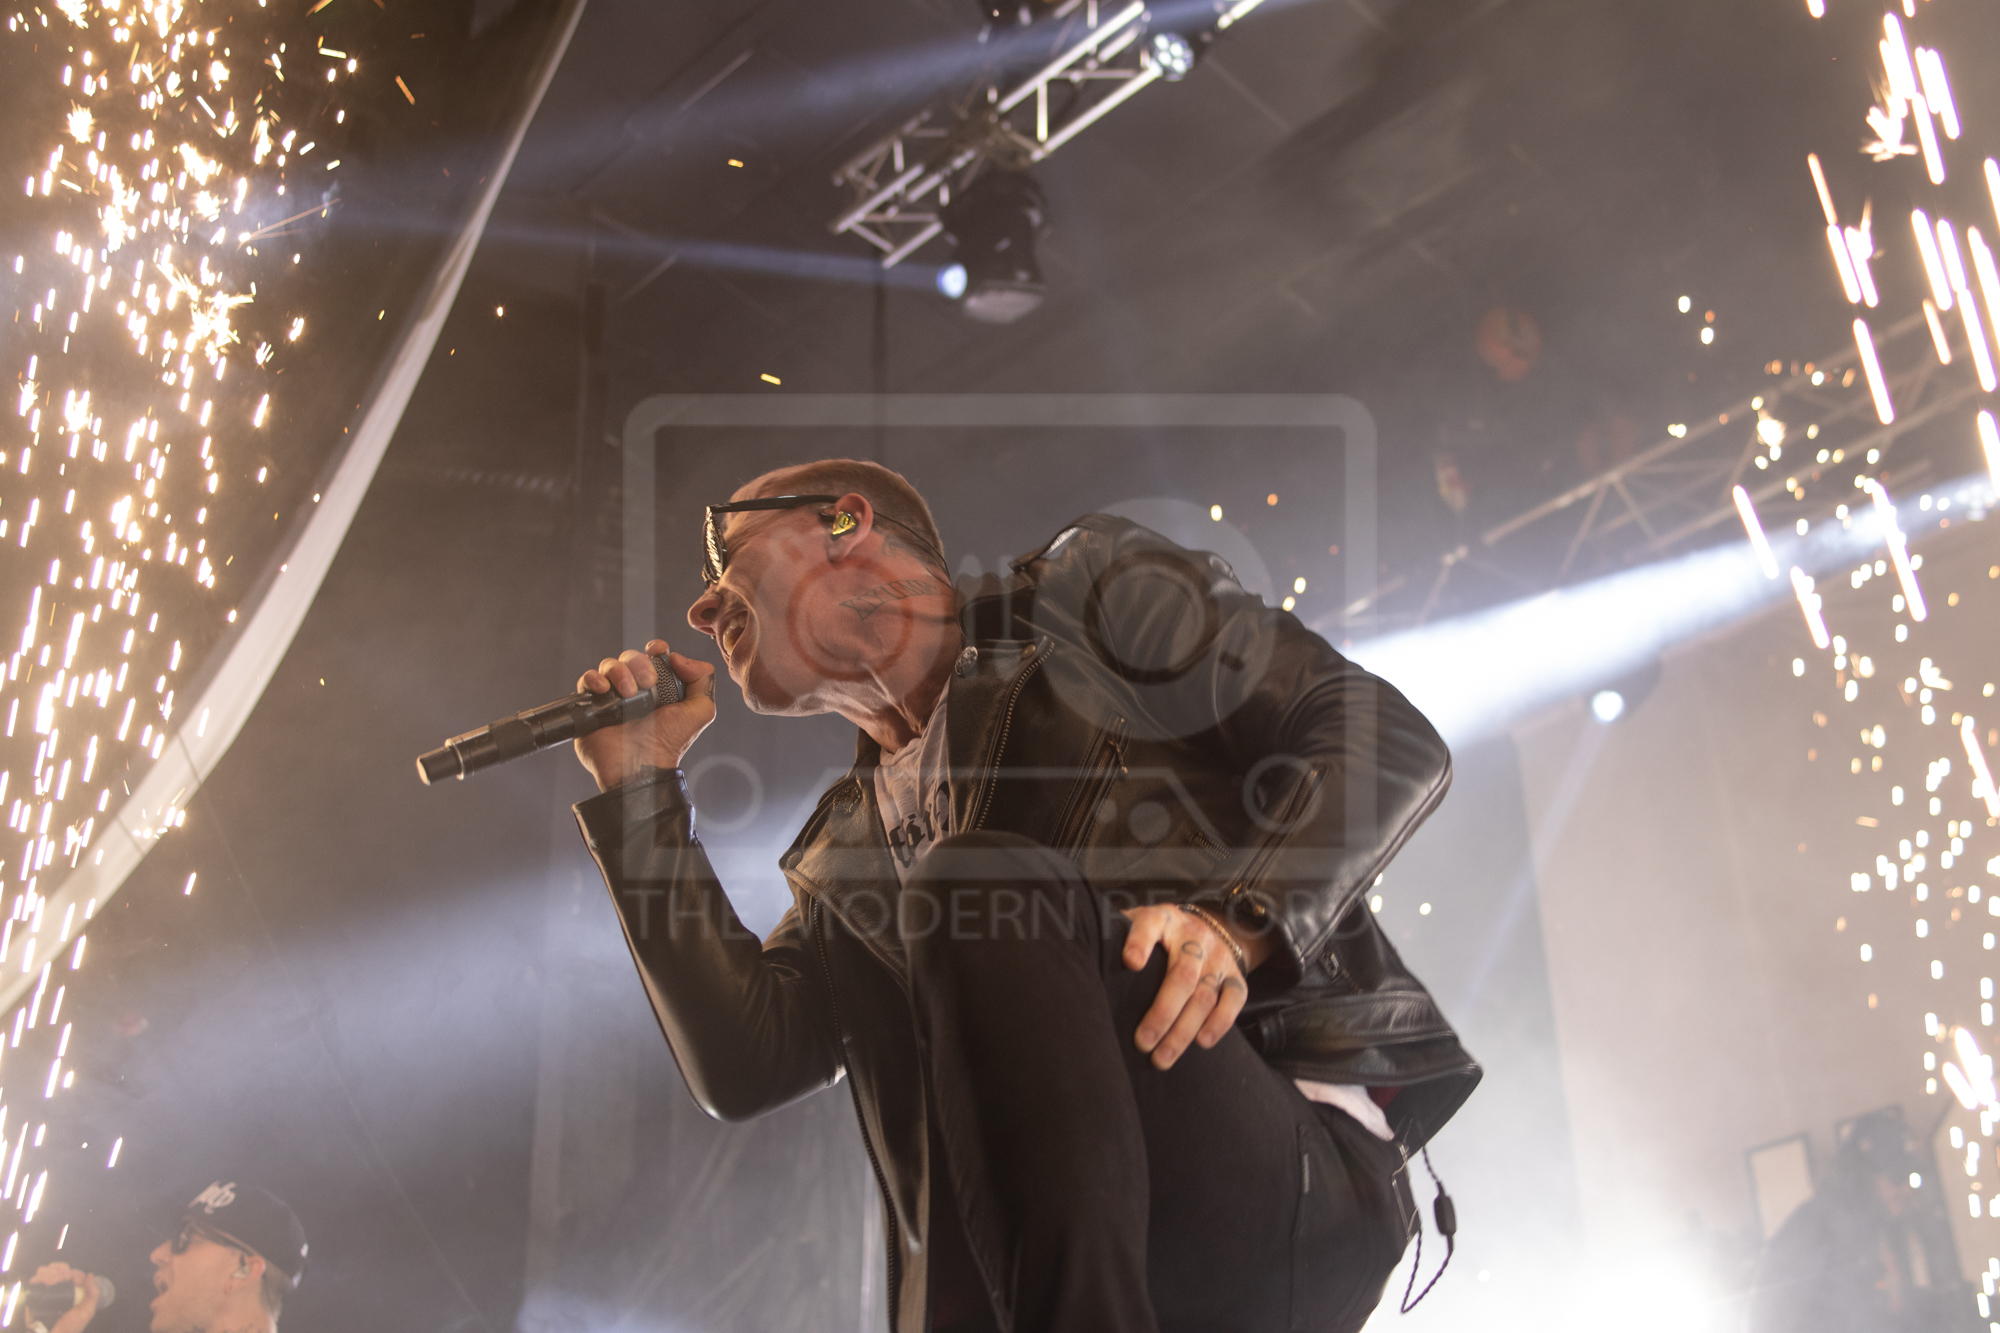 HOLLYWOOD UNDEAD PERFORMING AT NEWCASTLE'S O2 ACADEMY 30.04.19  PICTURE BY: WILL GORMAN PHOTOGRAPHY